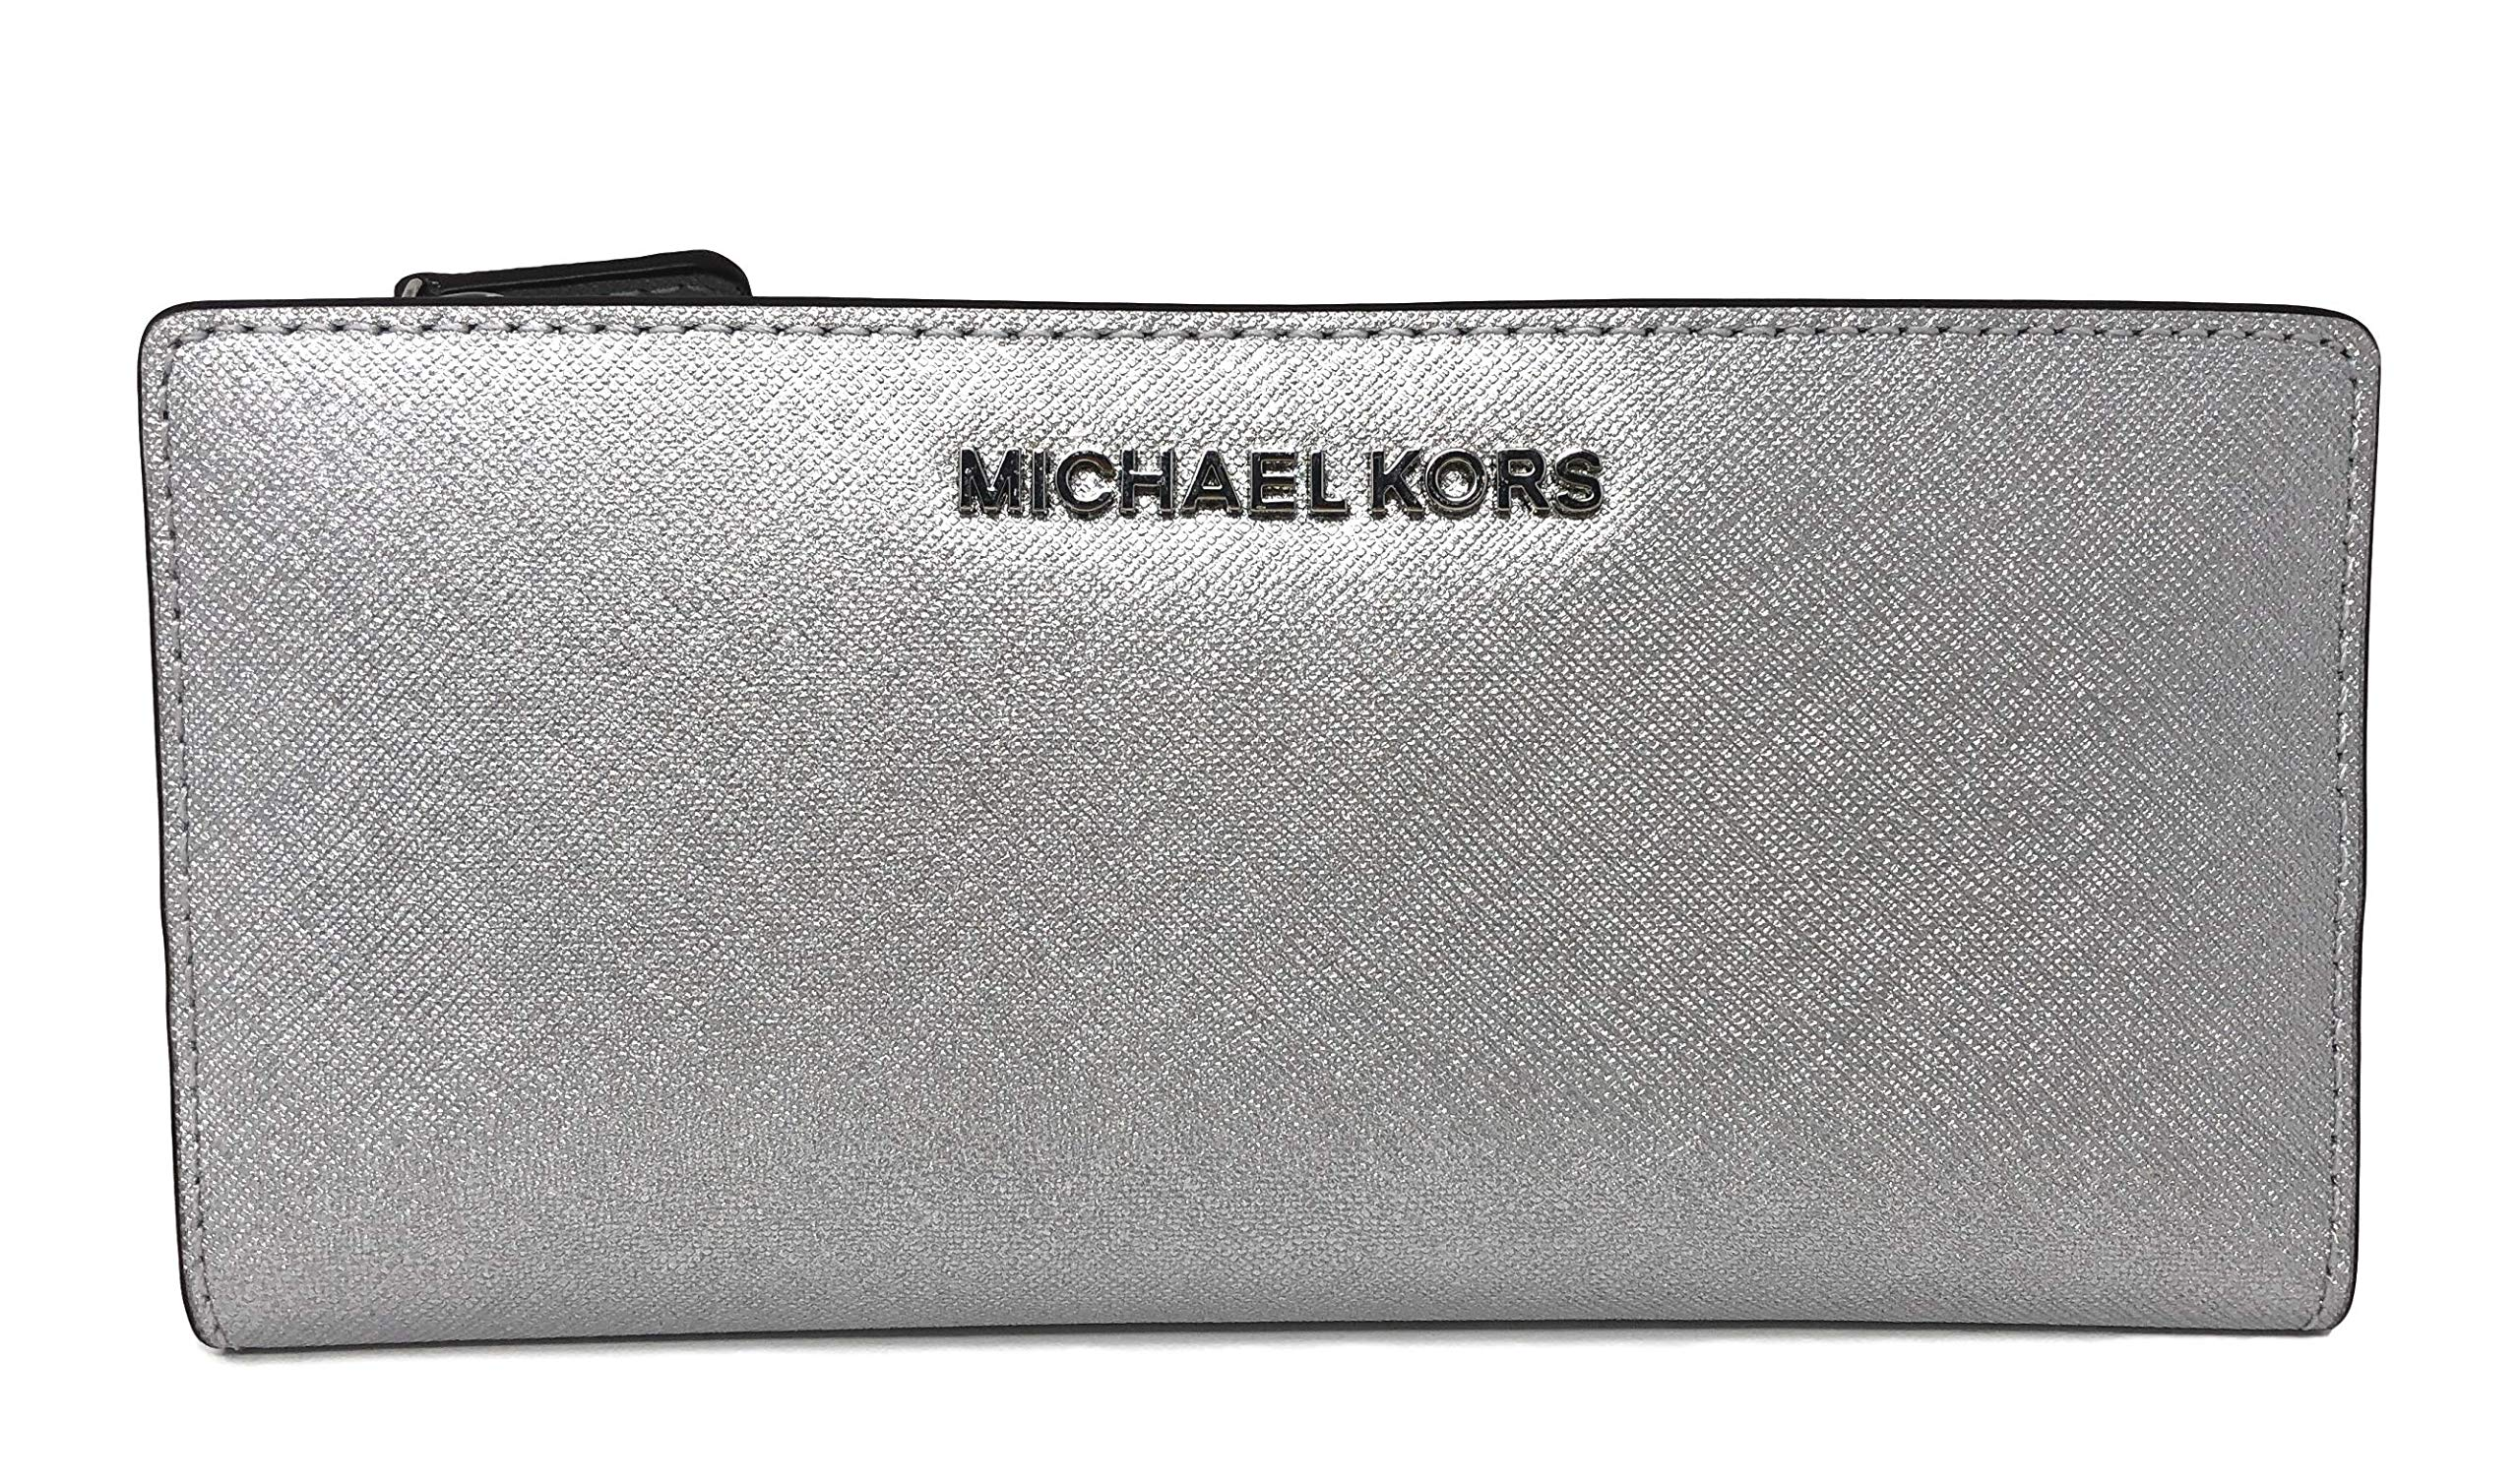 Michael Kors Jet Set Travel Large Card Case Carryall Leather Wallet in Silver